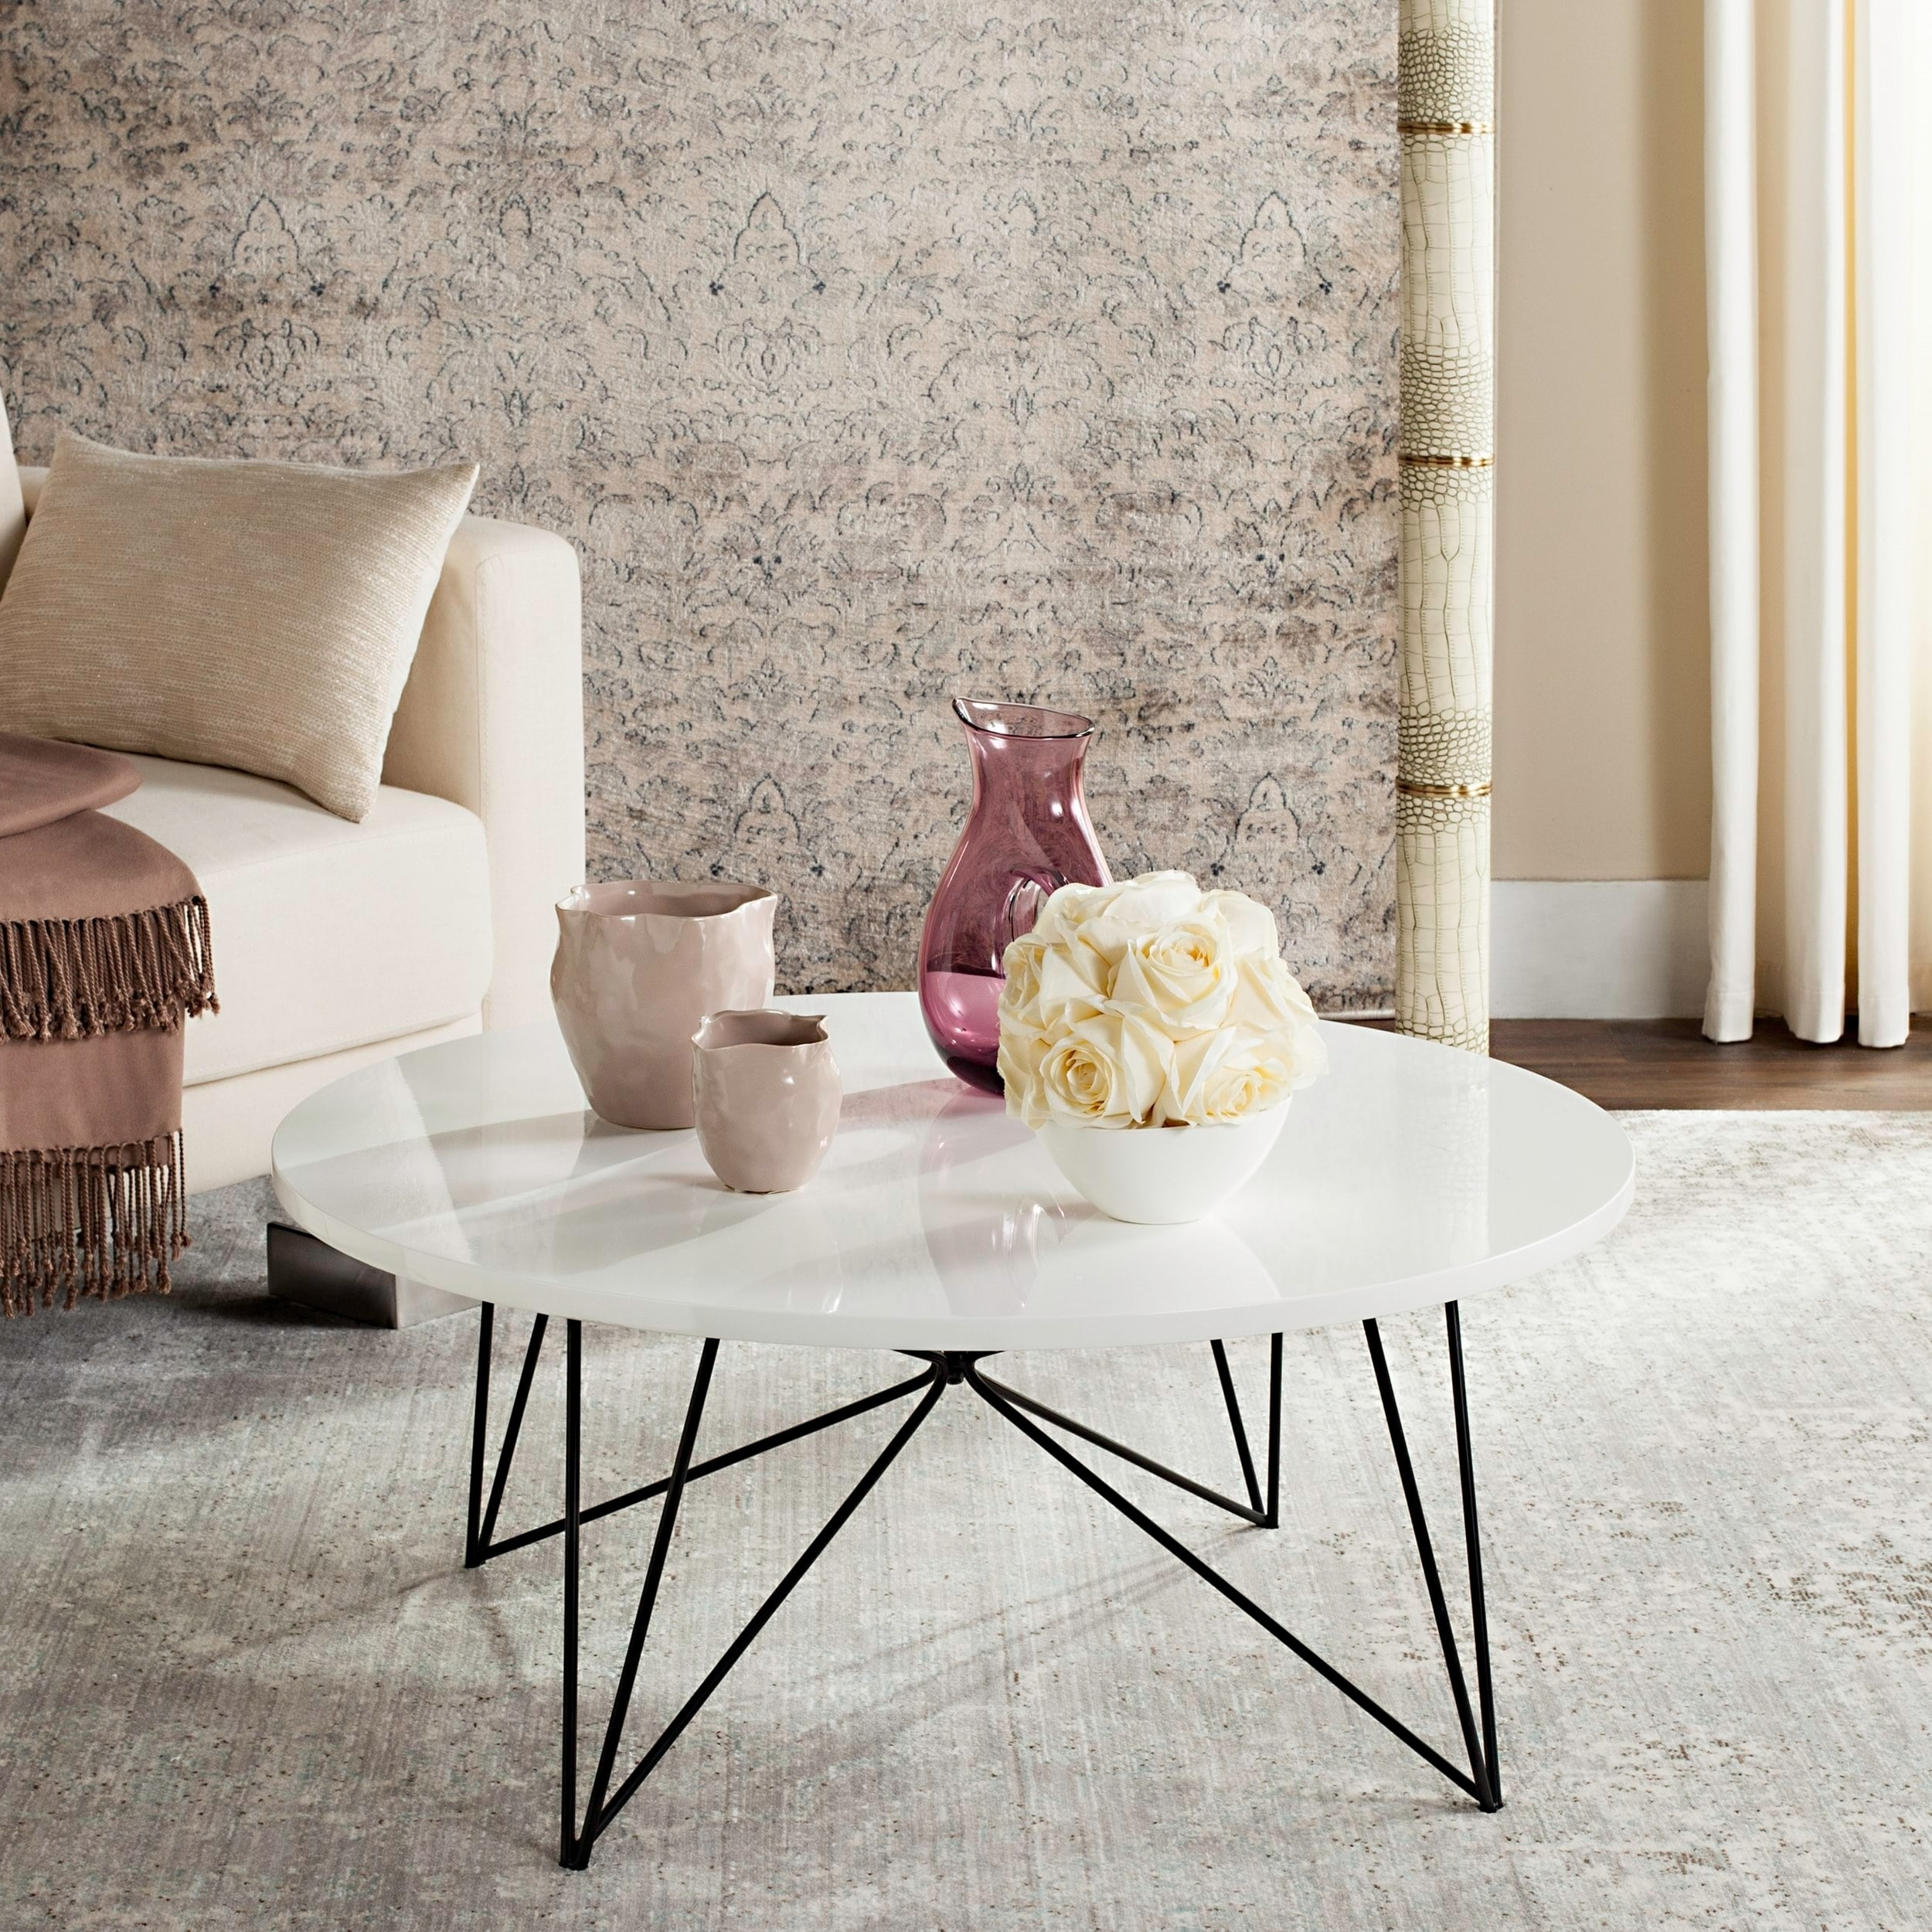 Buy modern contemporary coffee tables online at overstock our best living room furniture deals